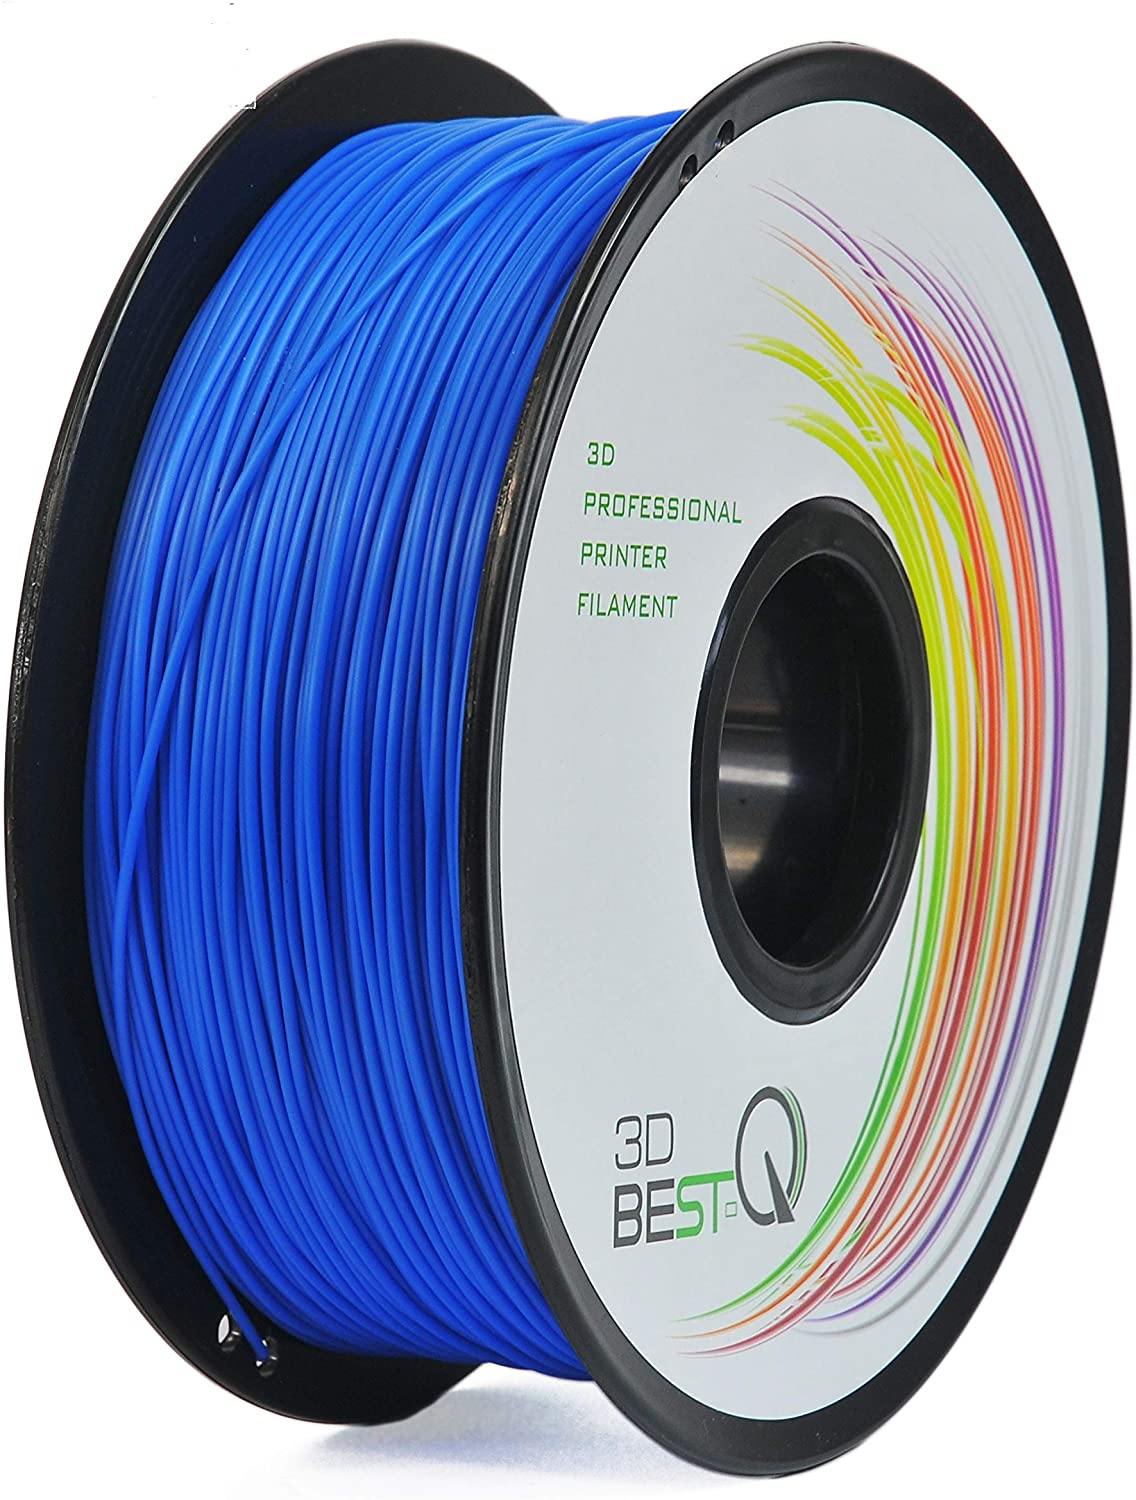 3D BEST-Q PLA 1.75mm 3D Printer Filament, Dimensional Accuracy +/- 0.03 mm, 1KG Spool,16 Color to Choose (Blue)